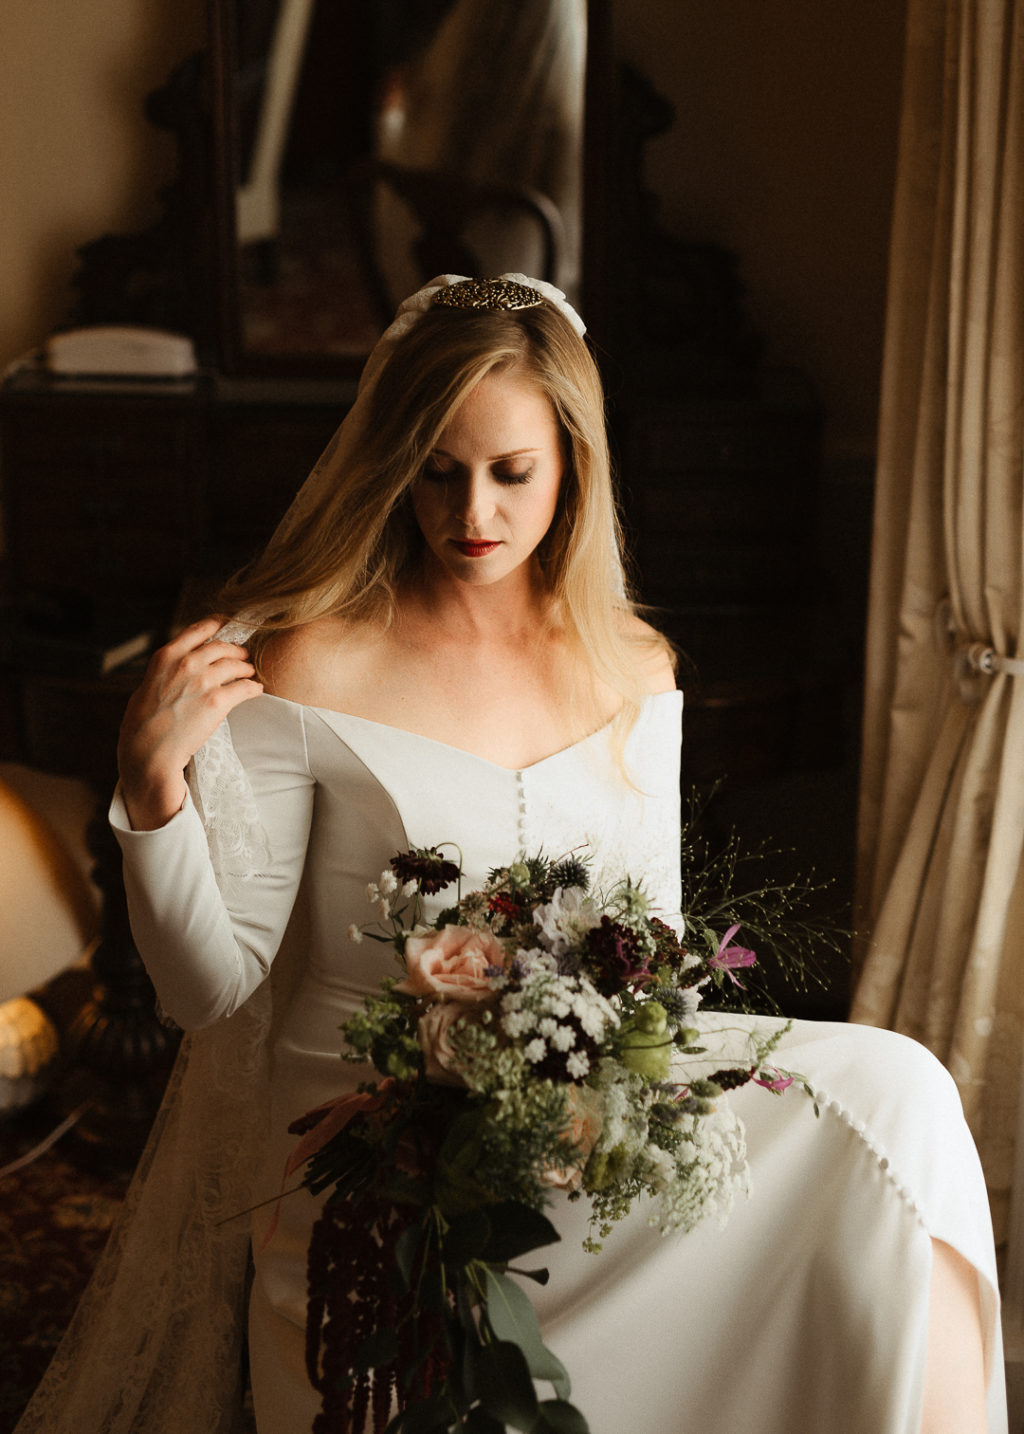 The bride was wearing a plain off the shoulder wedding dress with long sleeves and a button row plus a lace veil